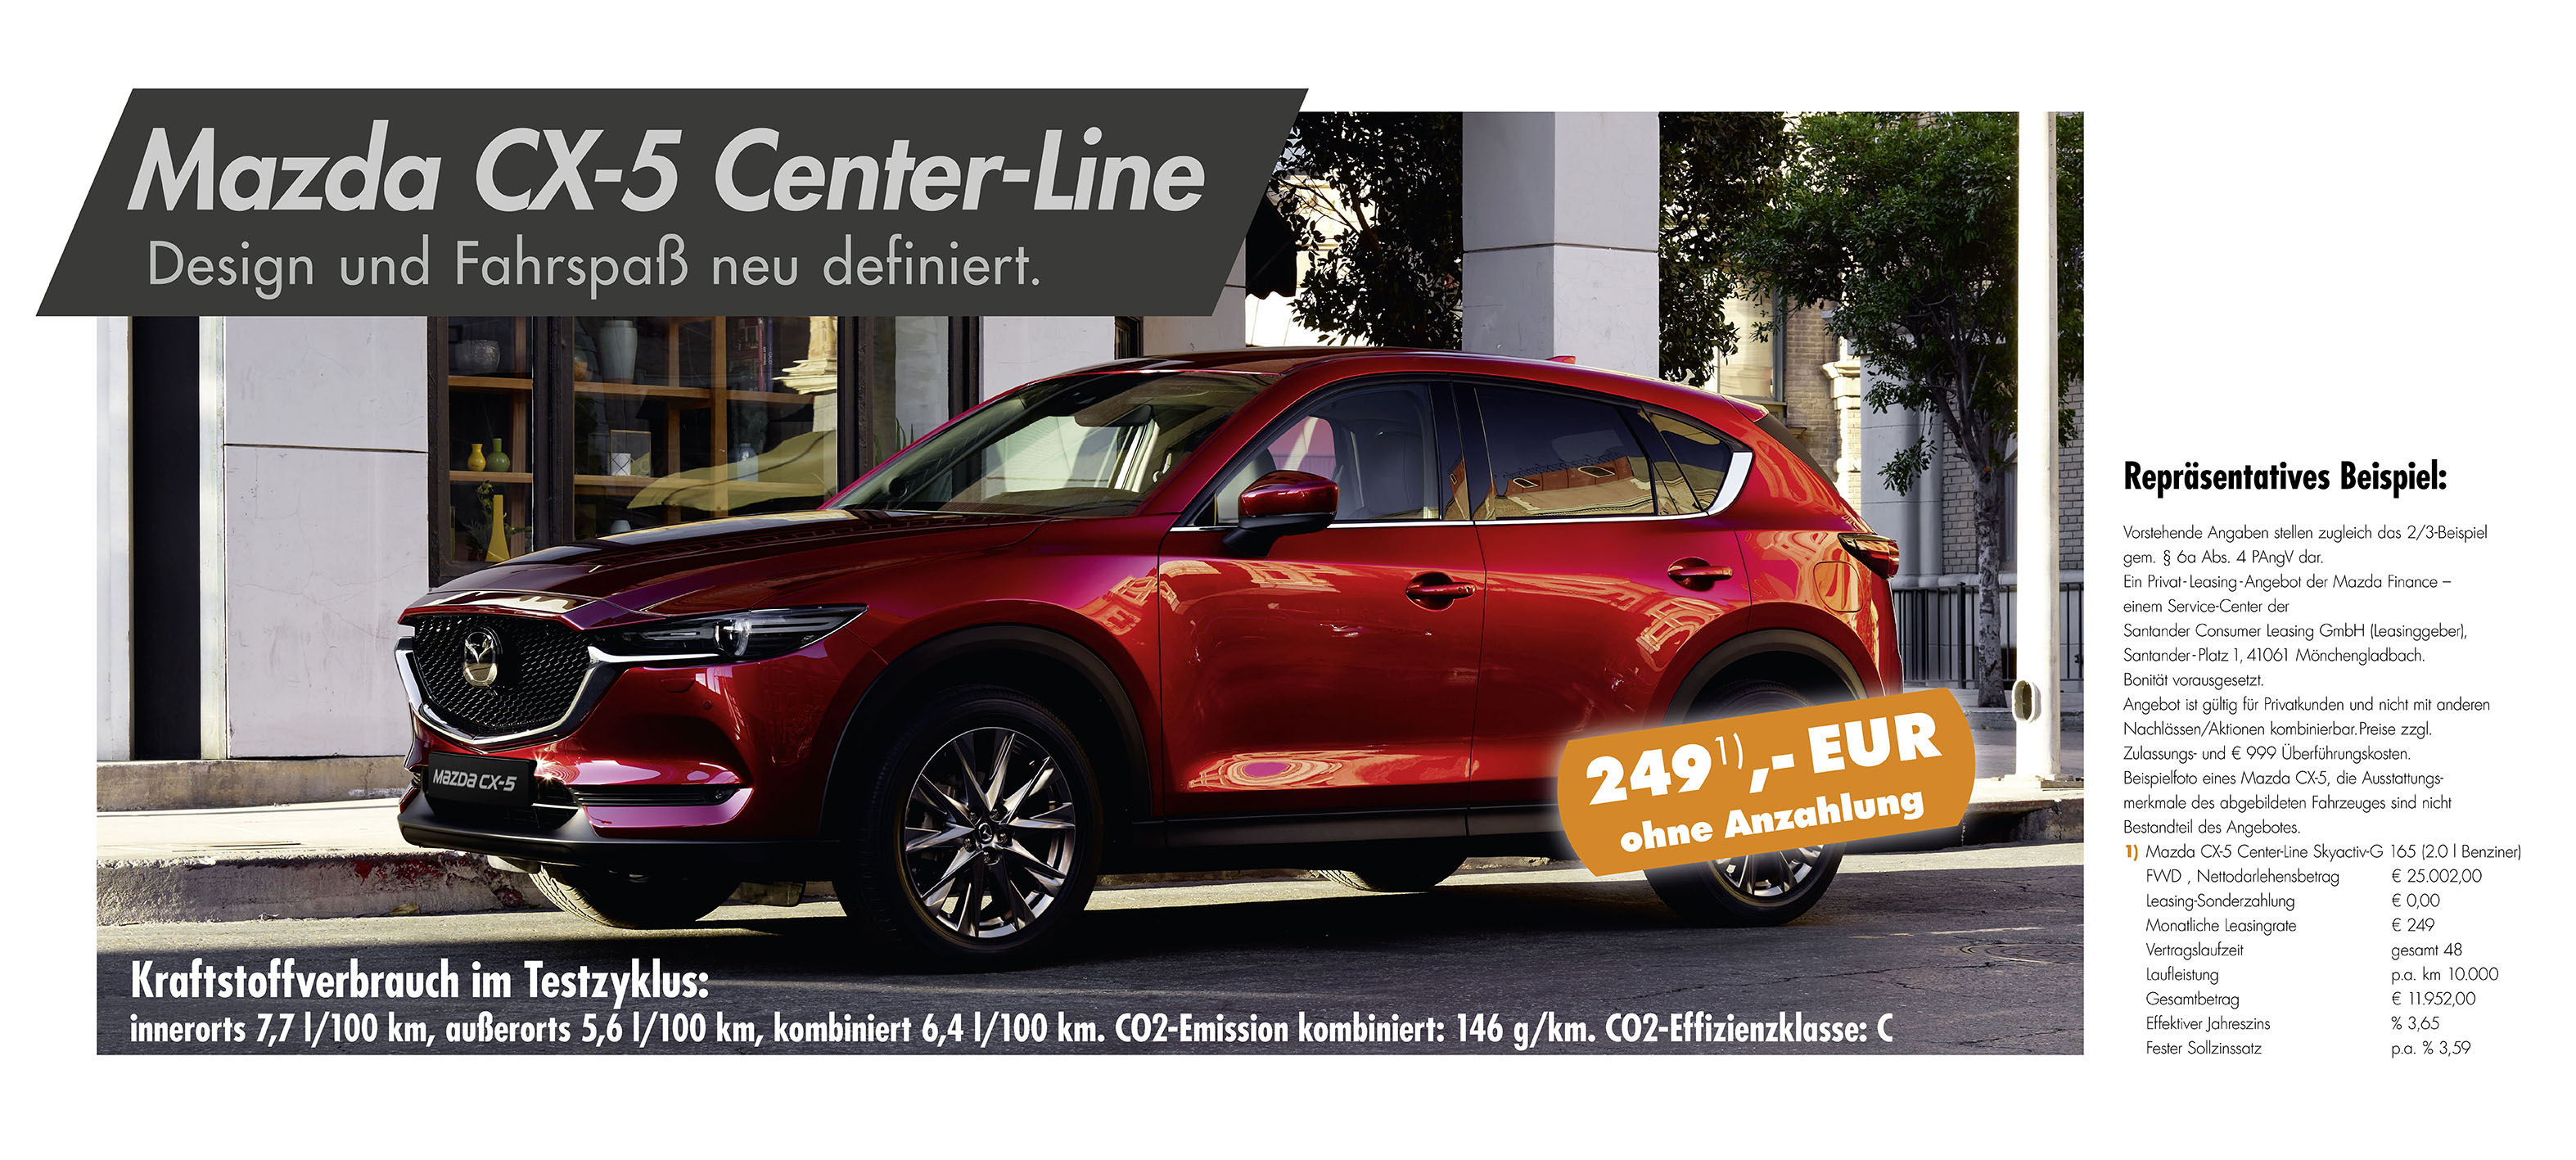 Autohaus Sachs Mazda CX-5 Leasing